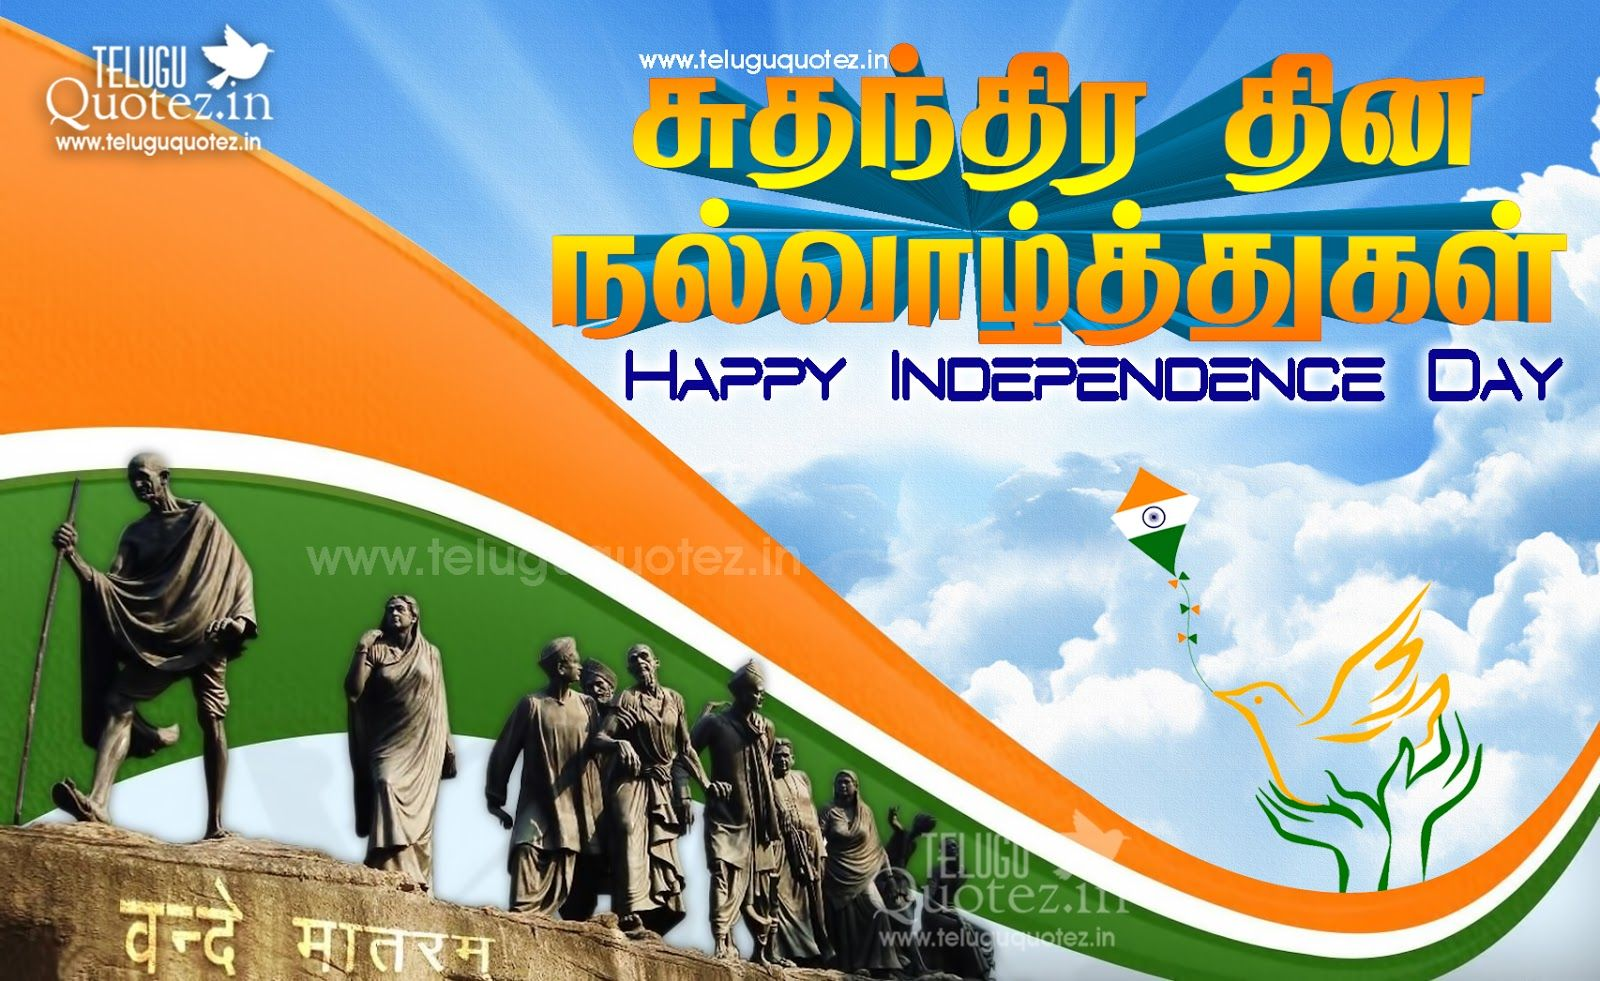 Teluguquotez In Happy Independence Day Tamil Quotes Quotes On Republic Day Republic Day Independence Day Wishes Happy republic day wishes in tamil